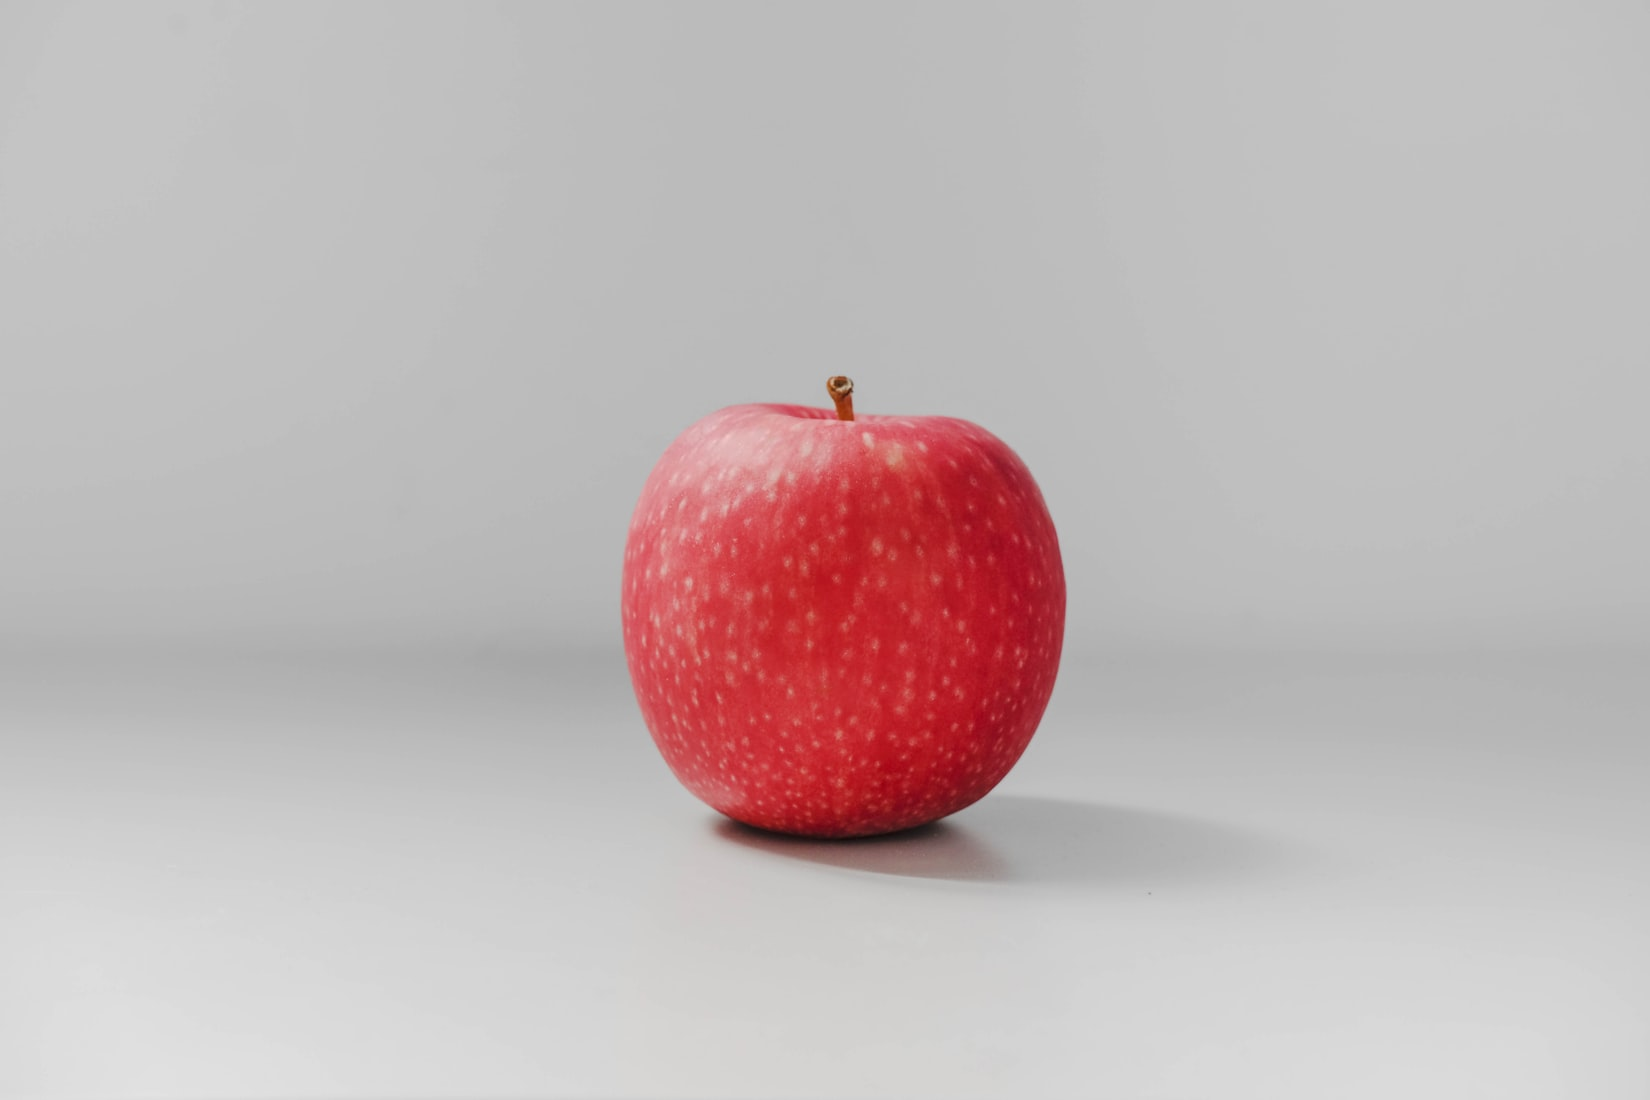 appel-rood